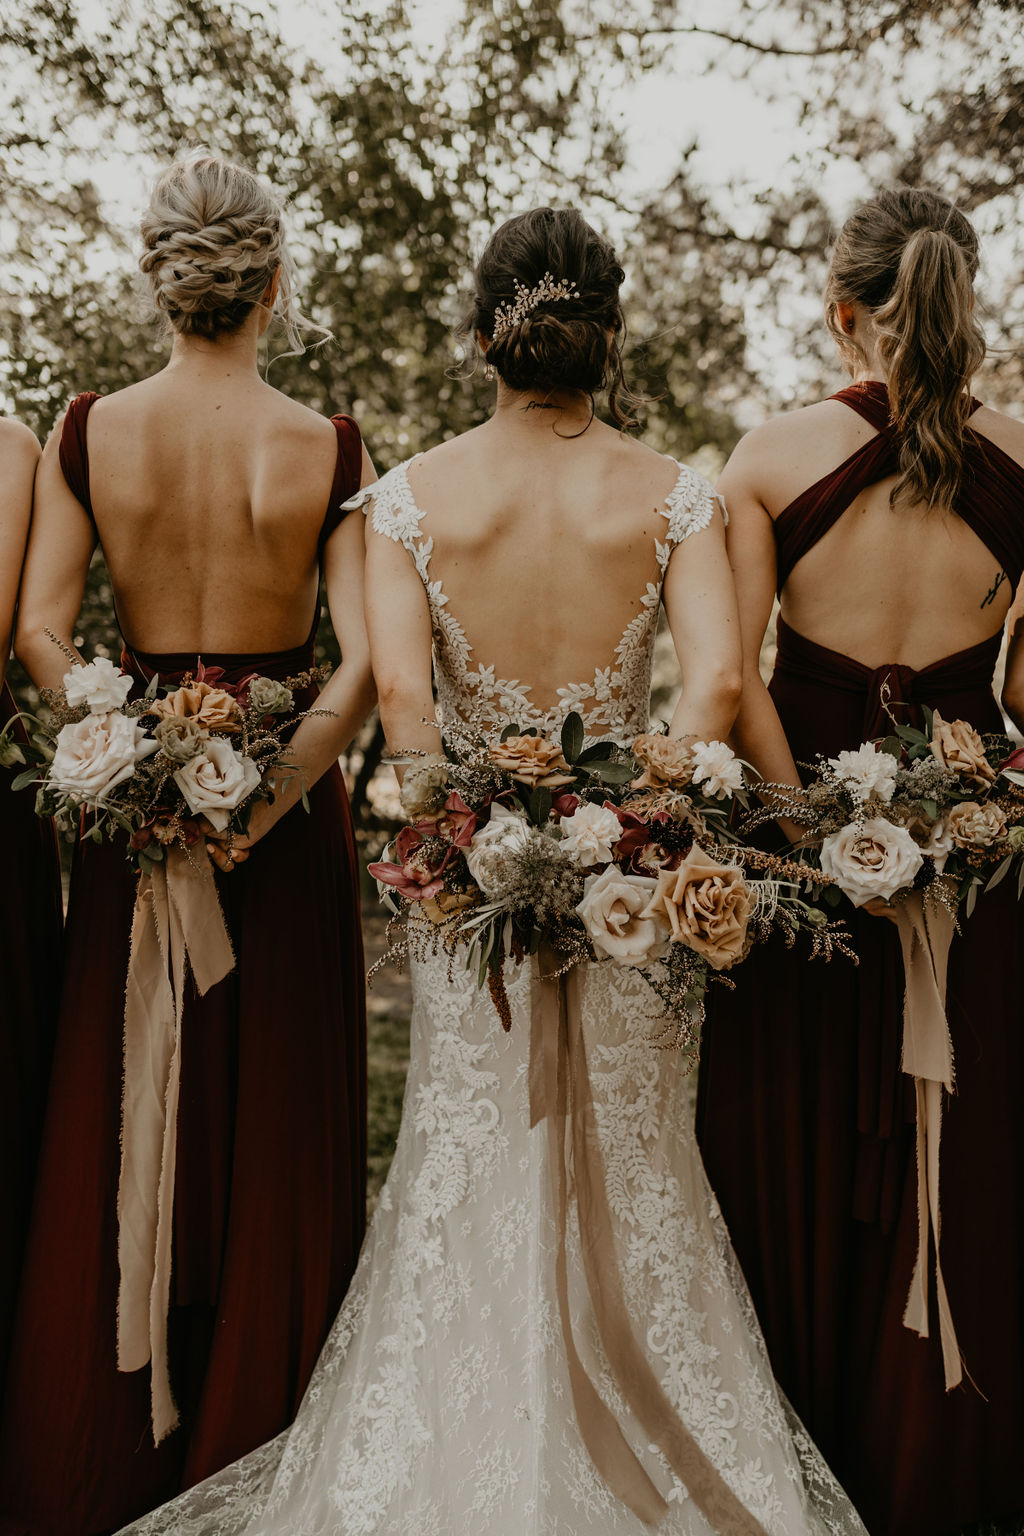 Boho Rustic wedding inspiration with texture, dried, neutral tones with lush foliage and maroon orchids.